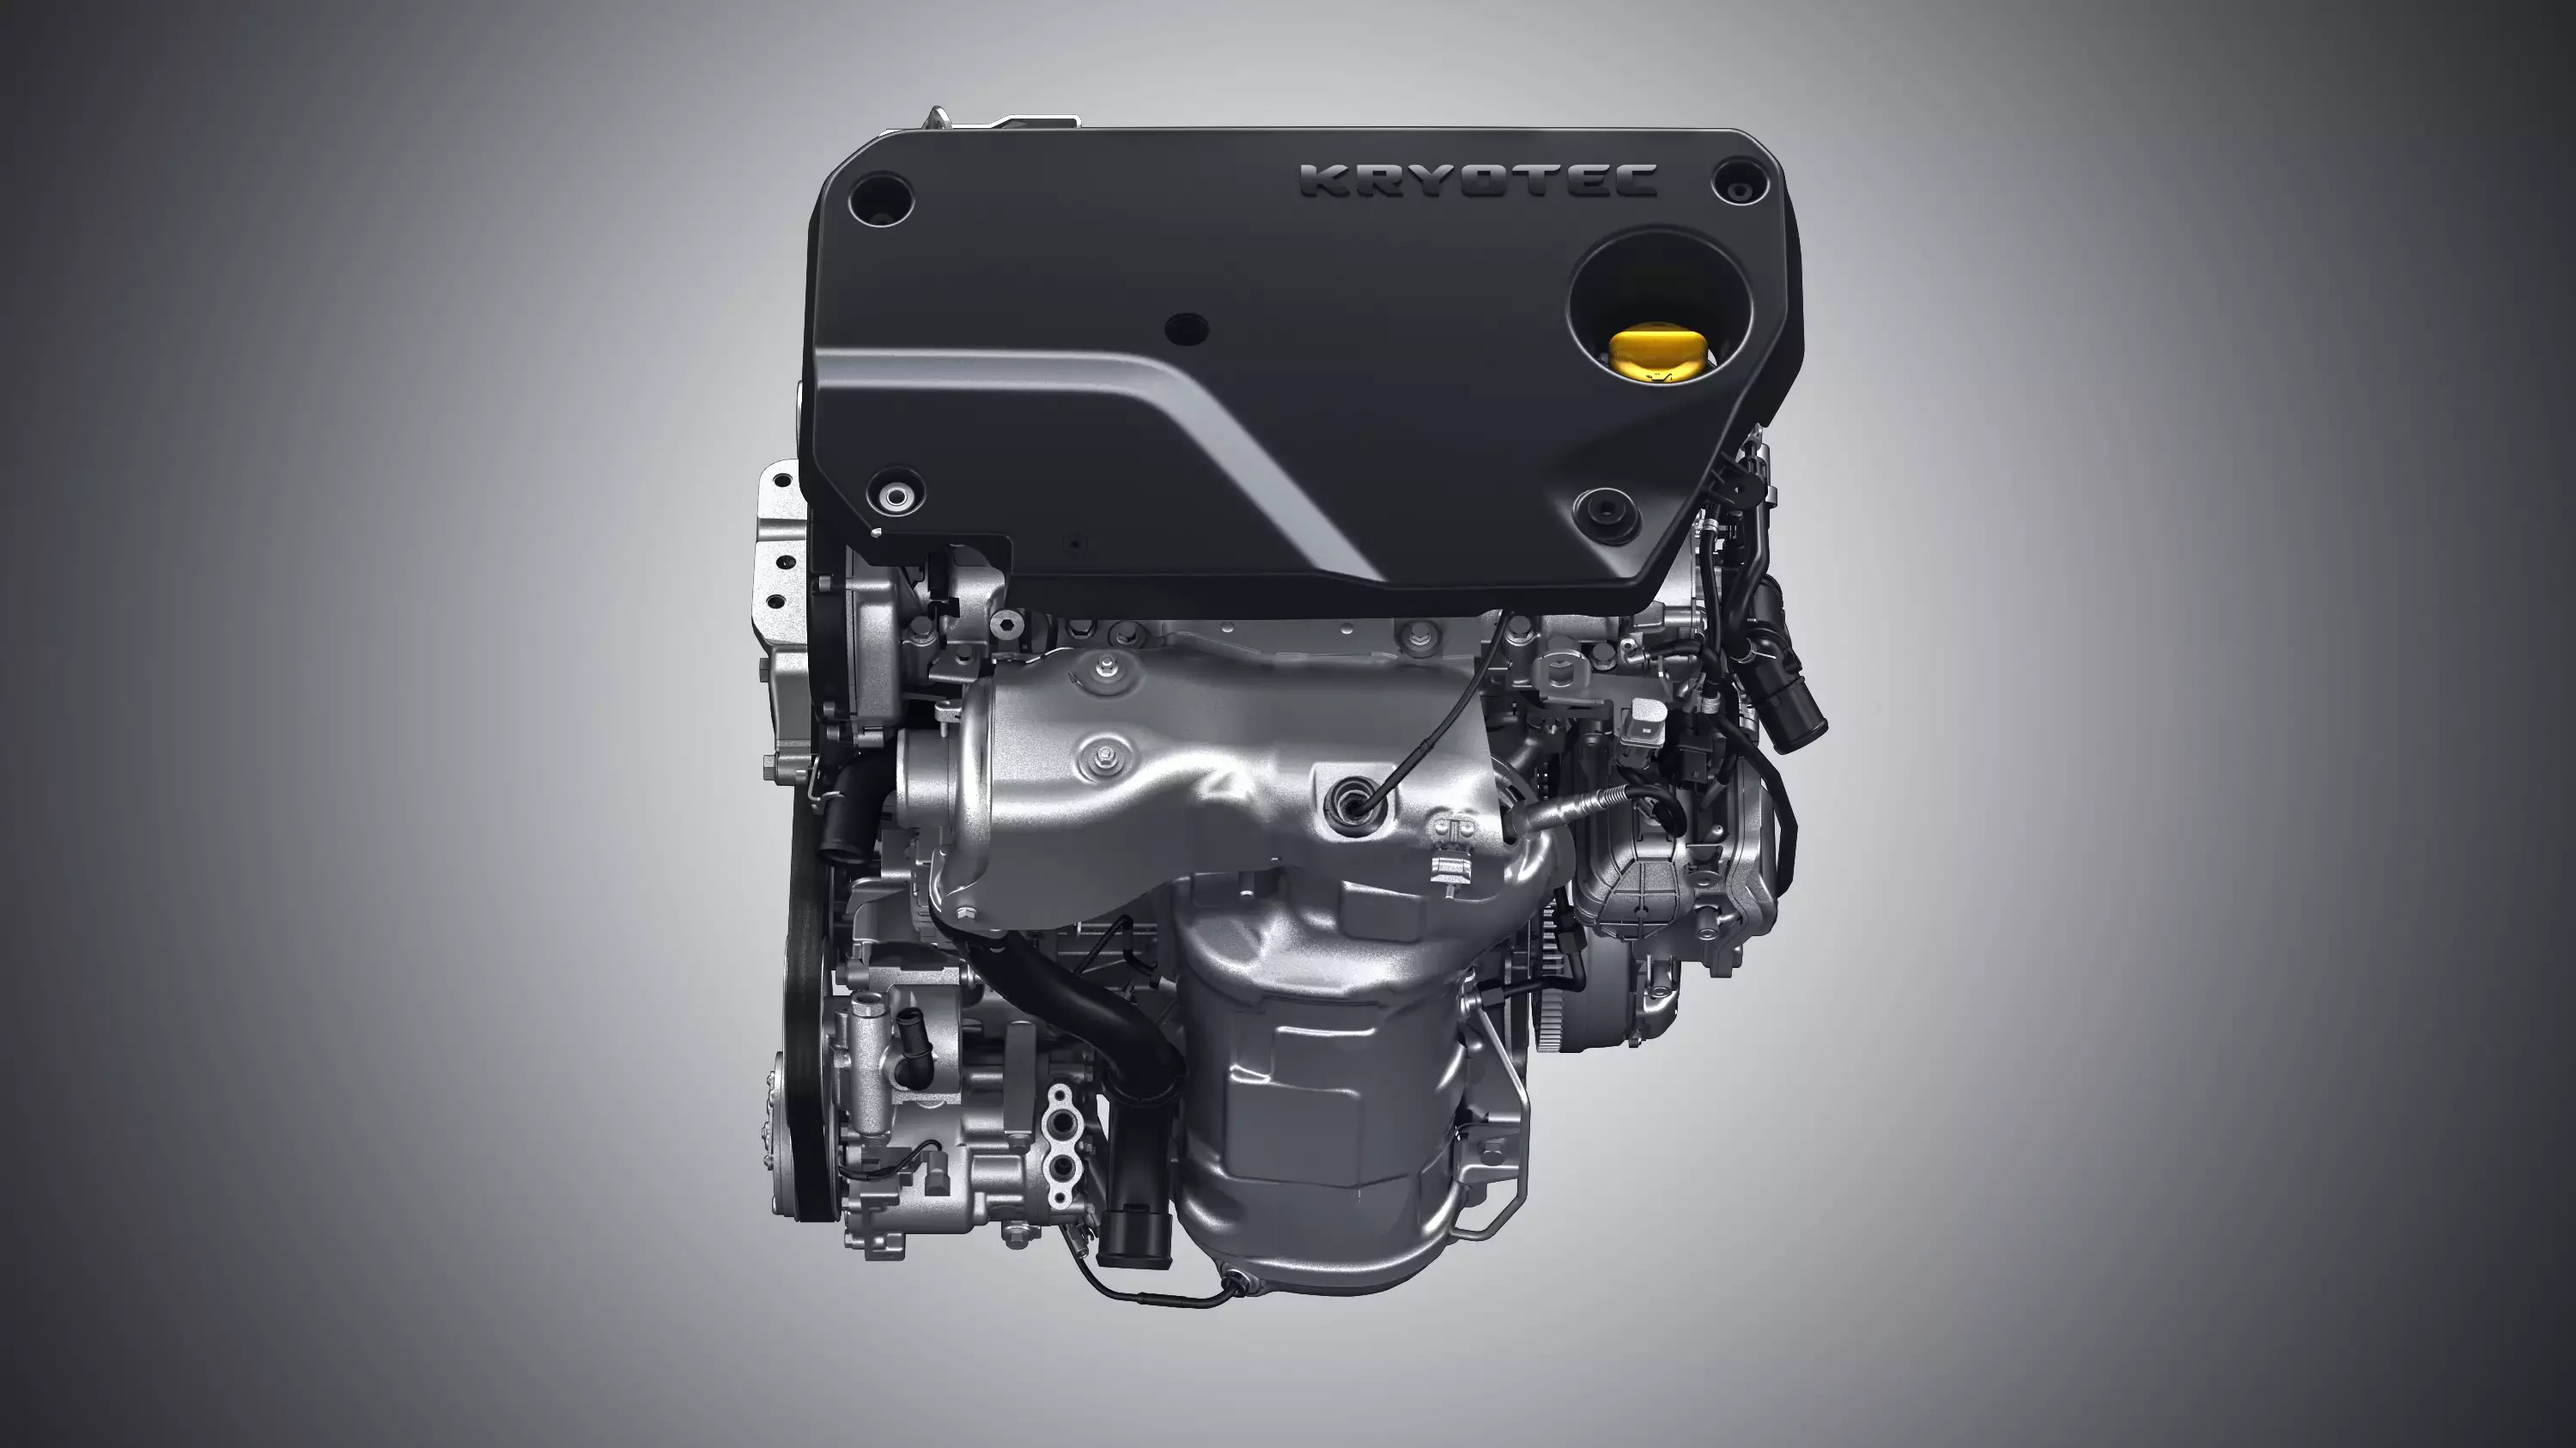 Litre Diesel Tata Harrier Tata Harrier Introduces 2 0l Kryotec Diesel Engine